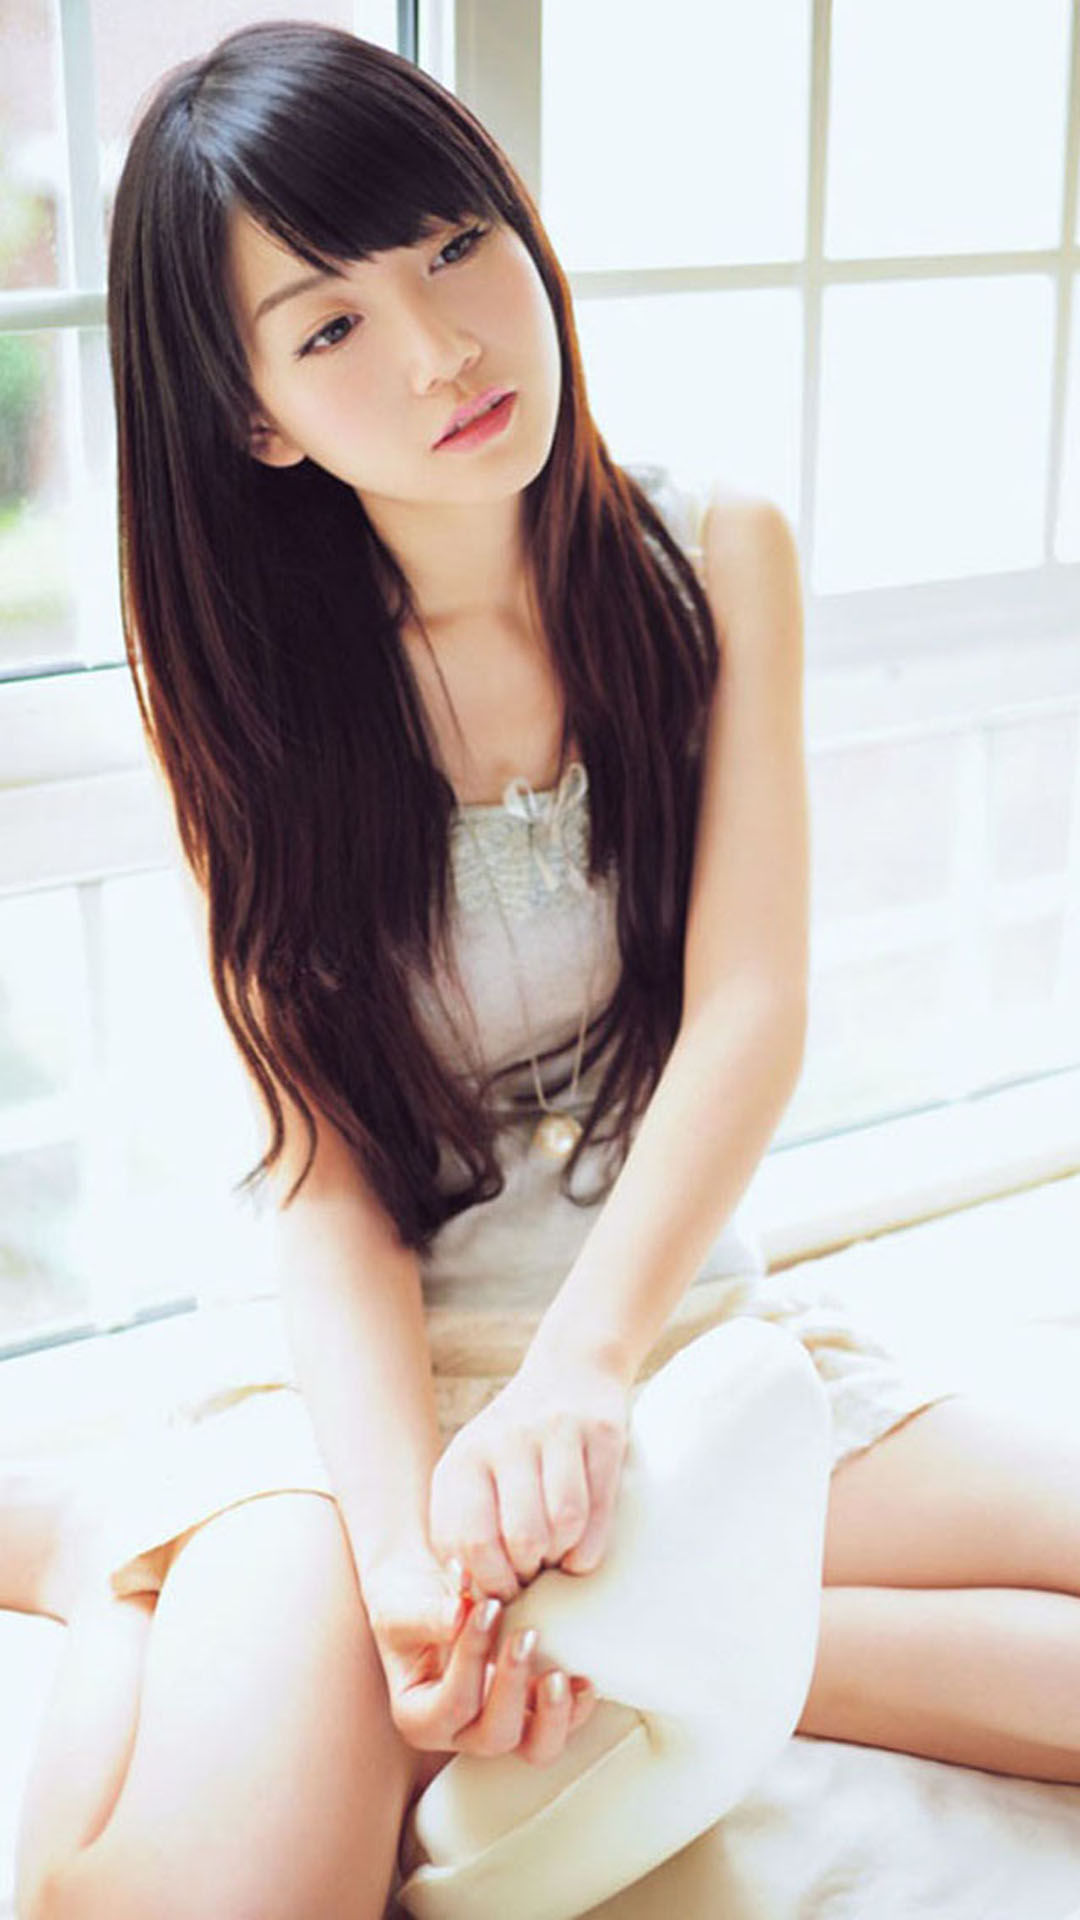 Cute Love Wallpapers Download Hd Beauty Japanese Girl Best Htc One Wallpapers